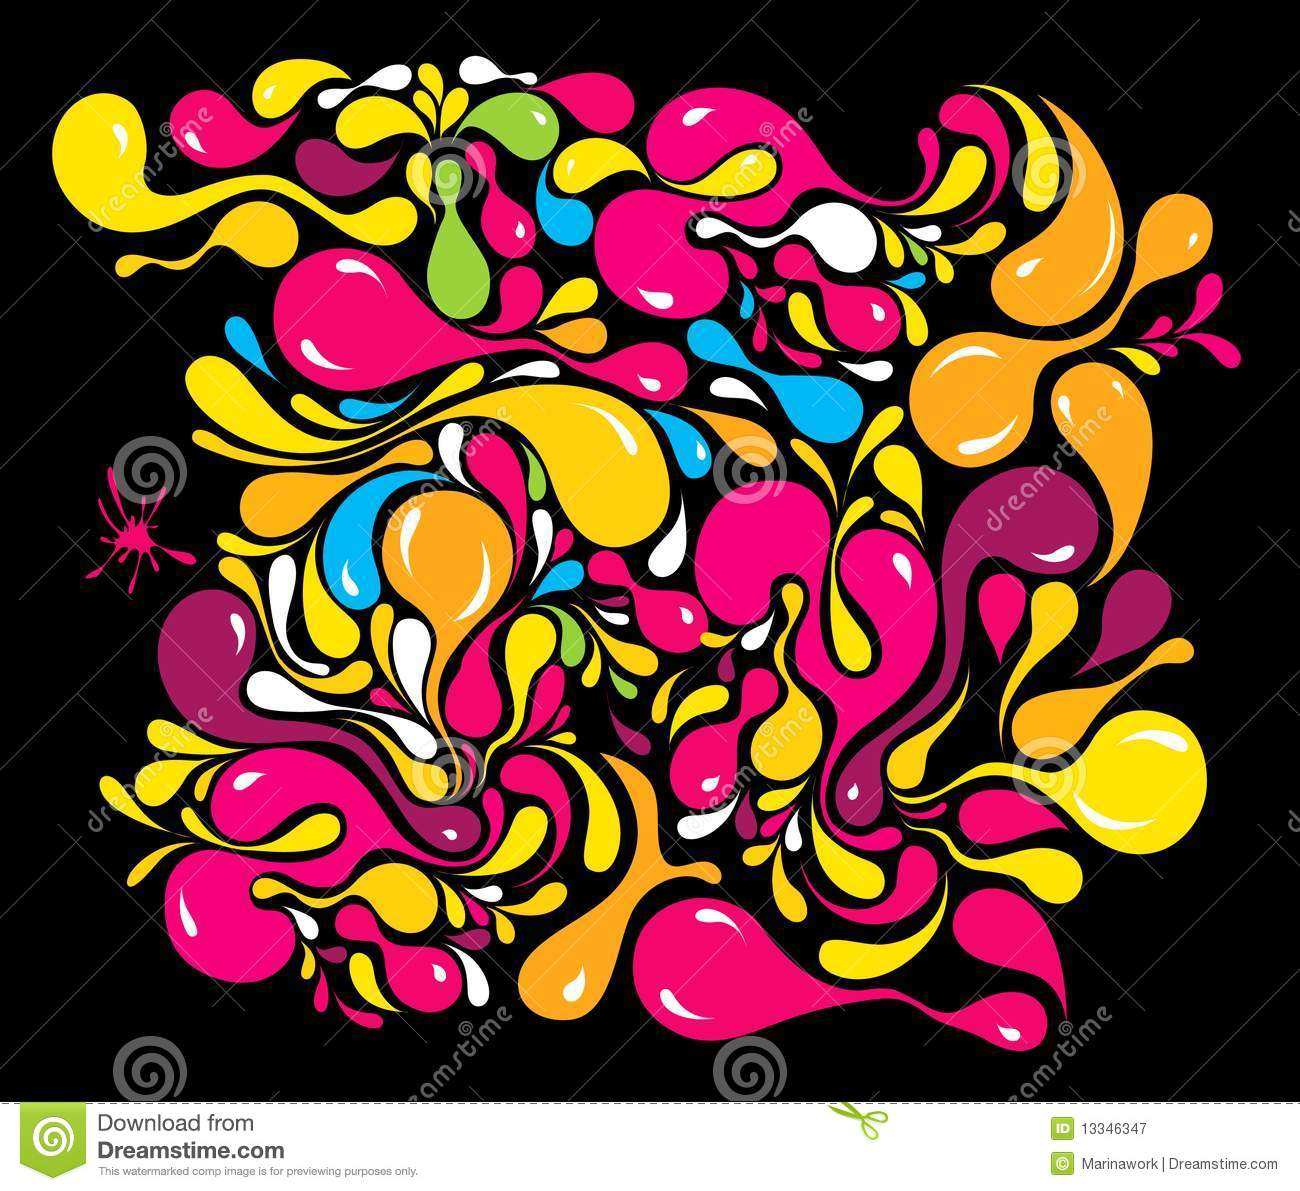 More similar stock images of   Bright multi-coloured pattern  Bright Colourful Patterns